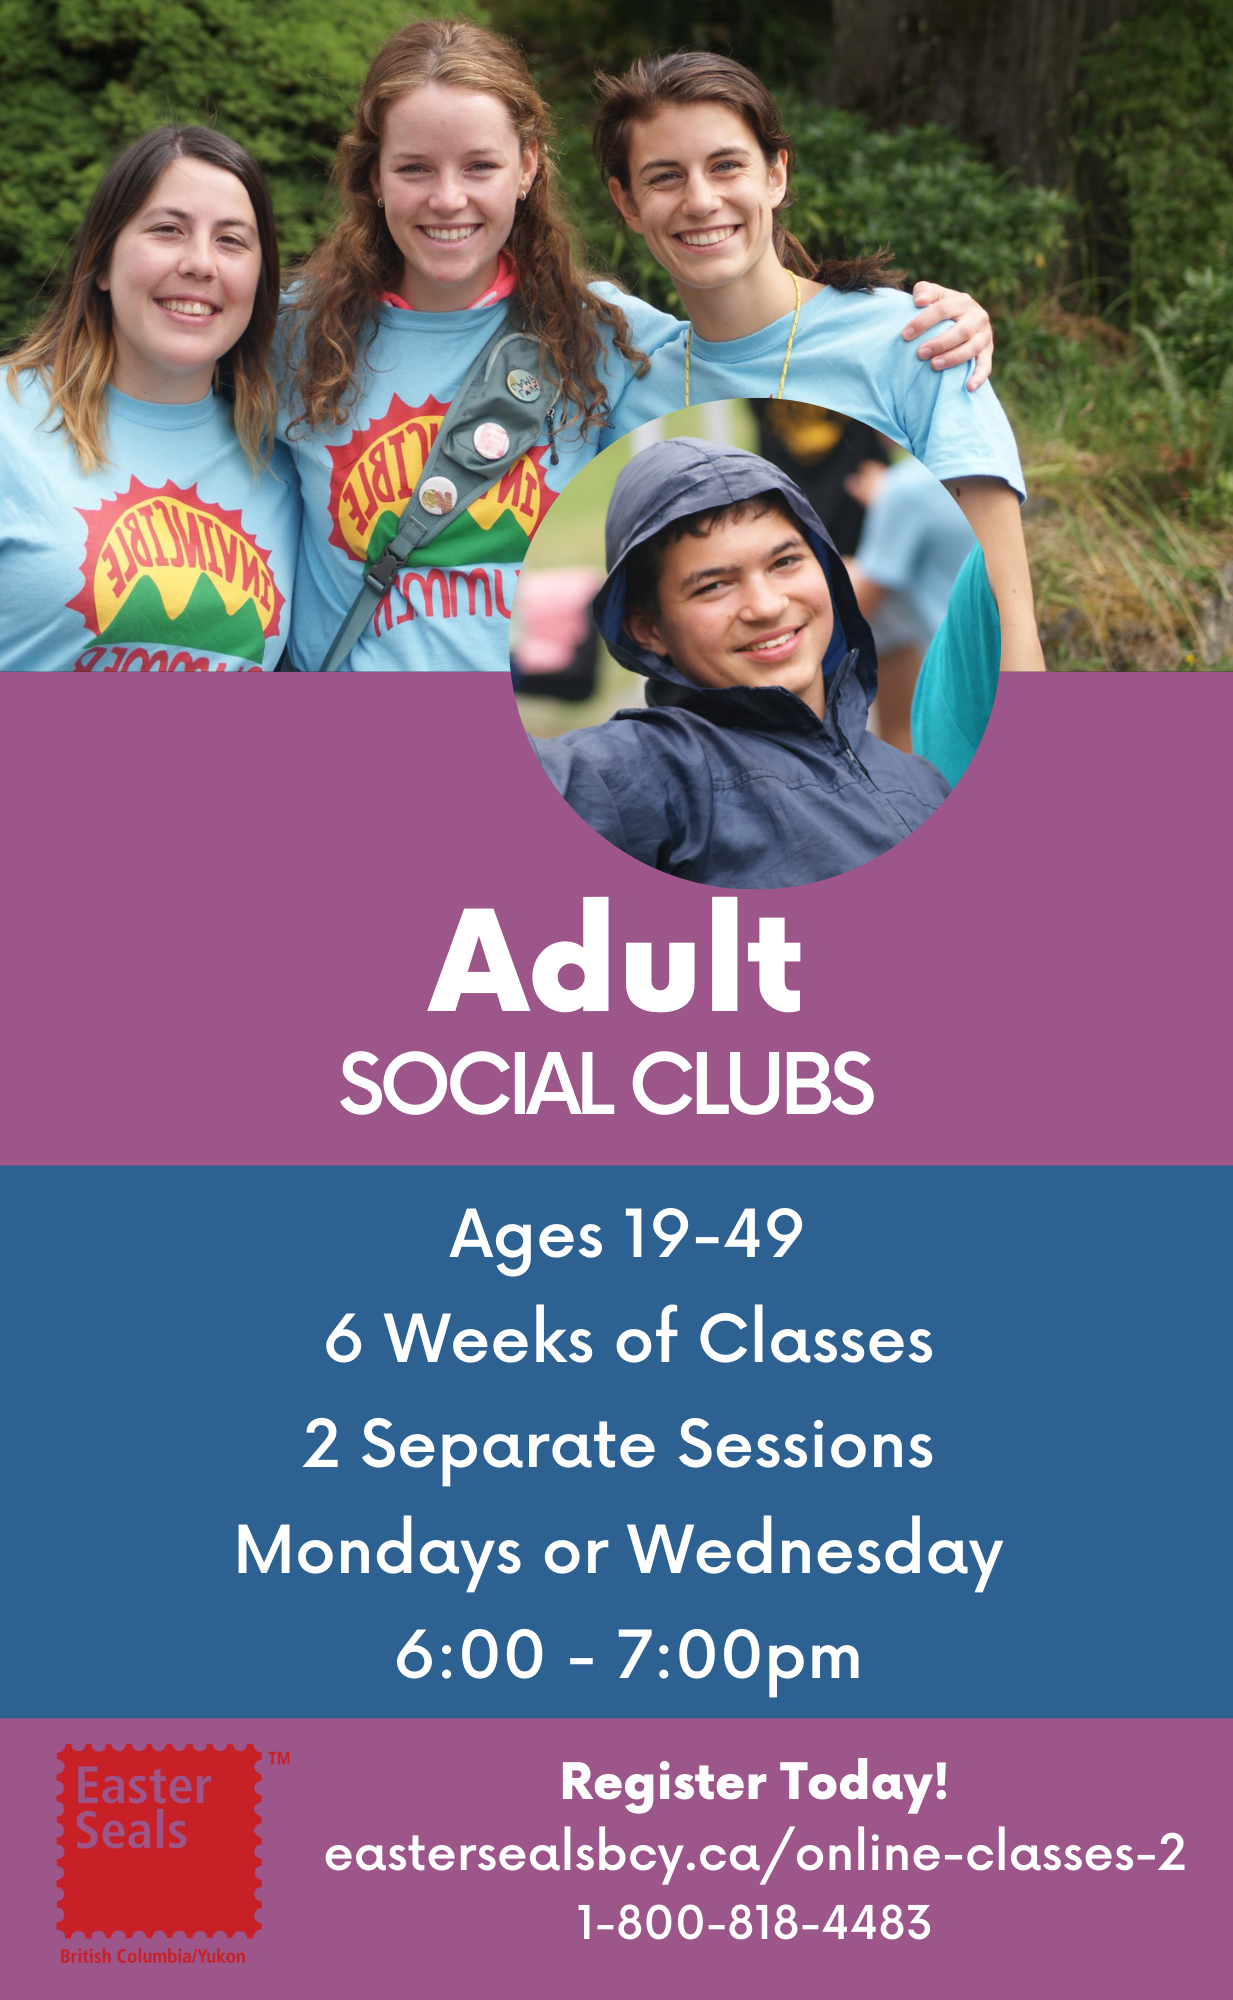 Adult Social Clubs for Ages 19-49